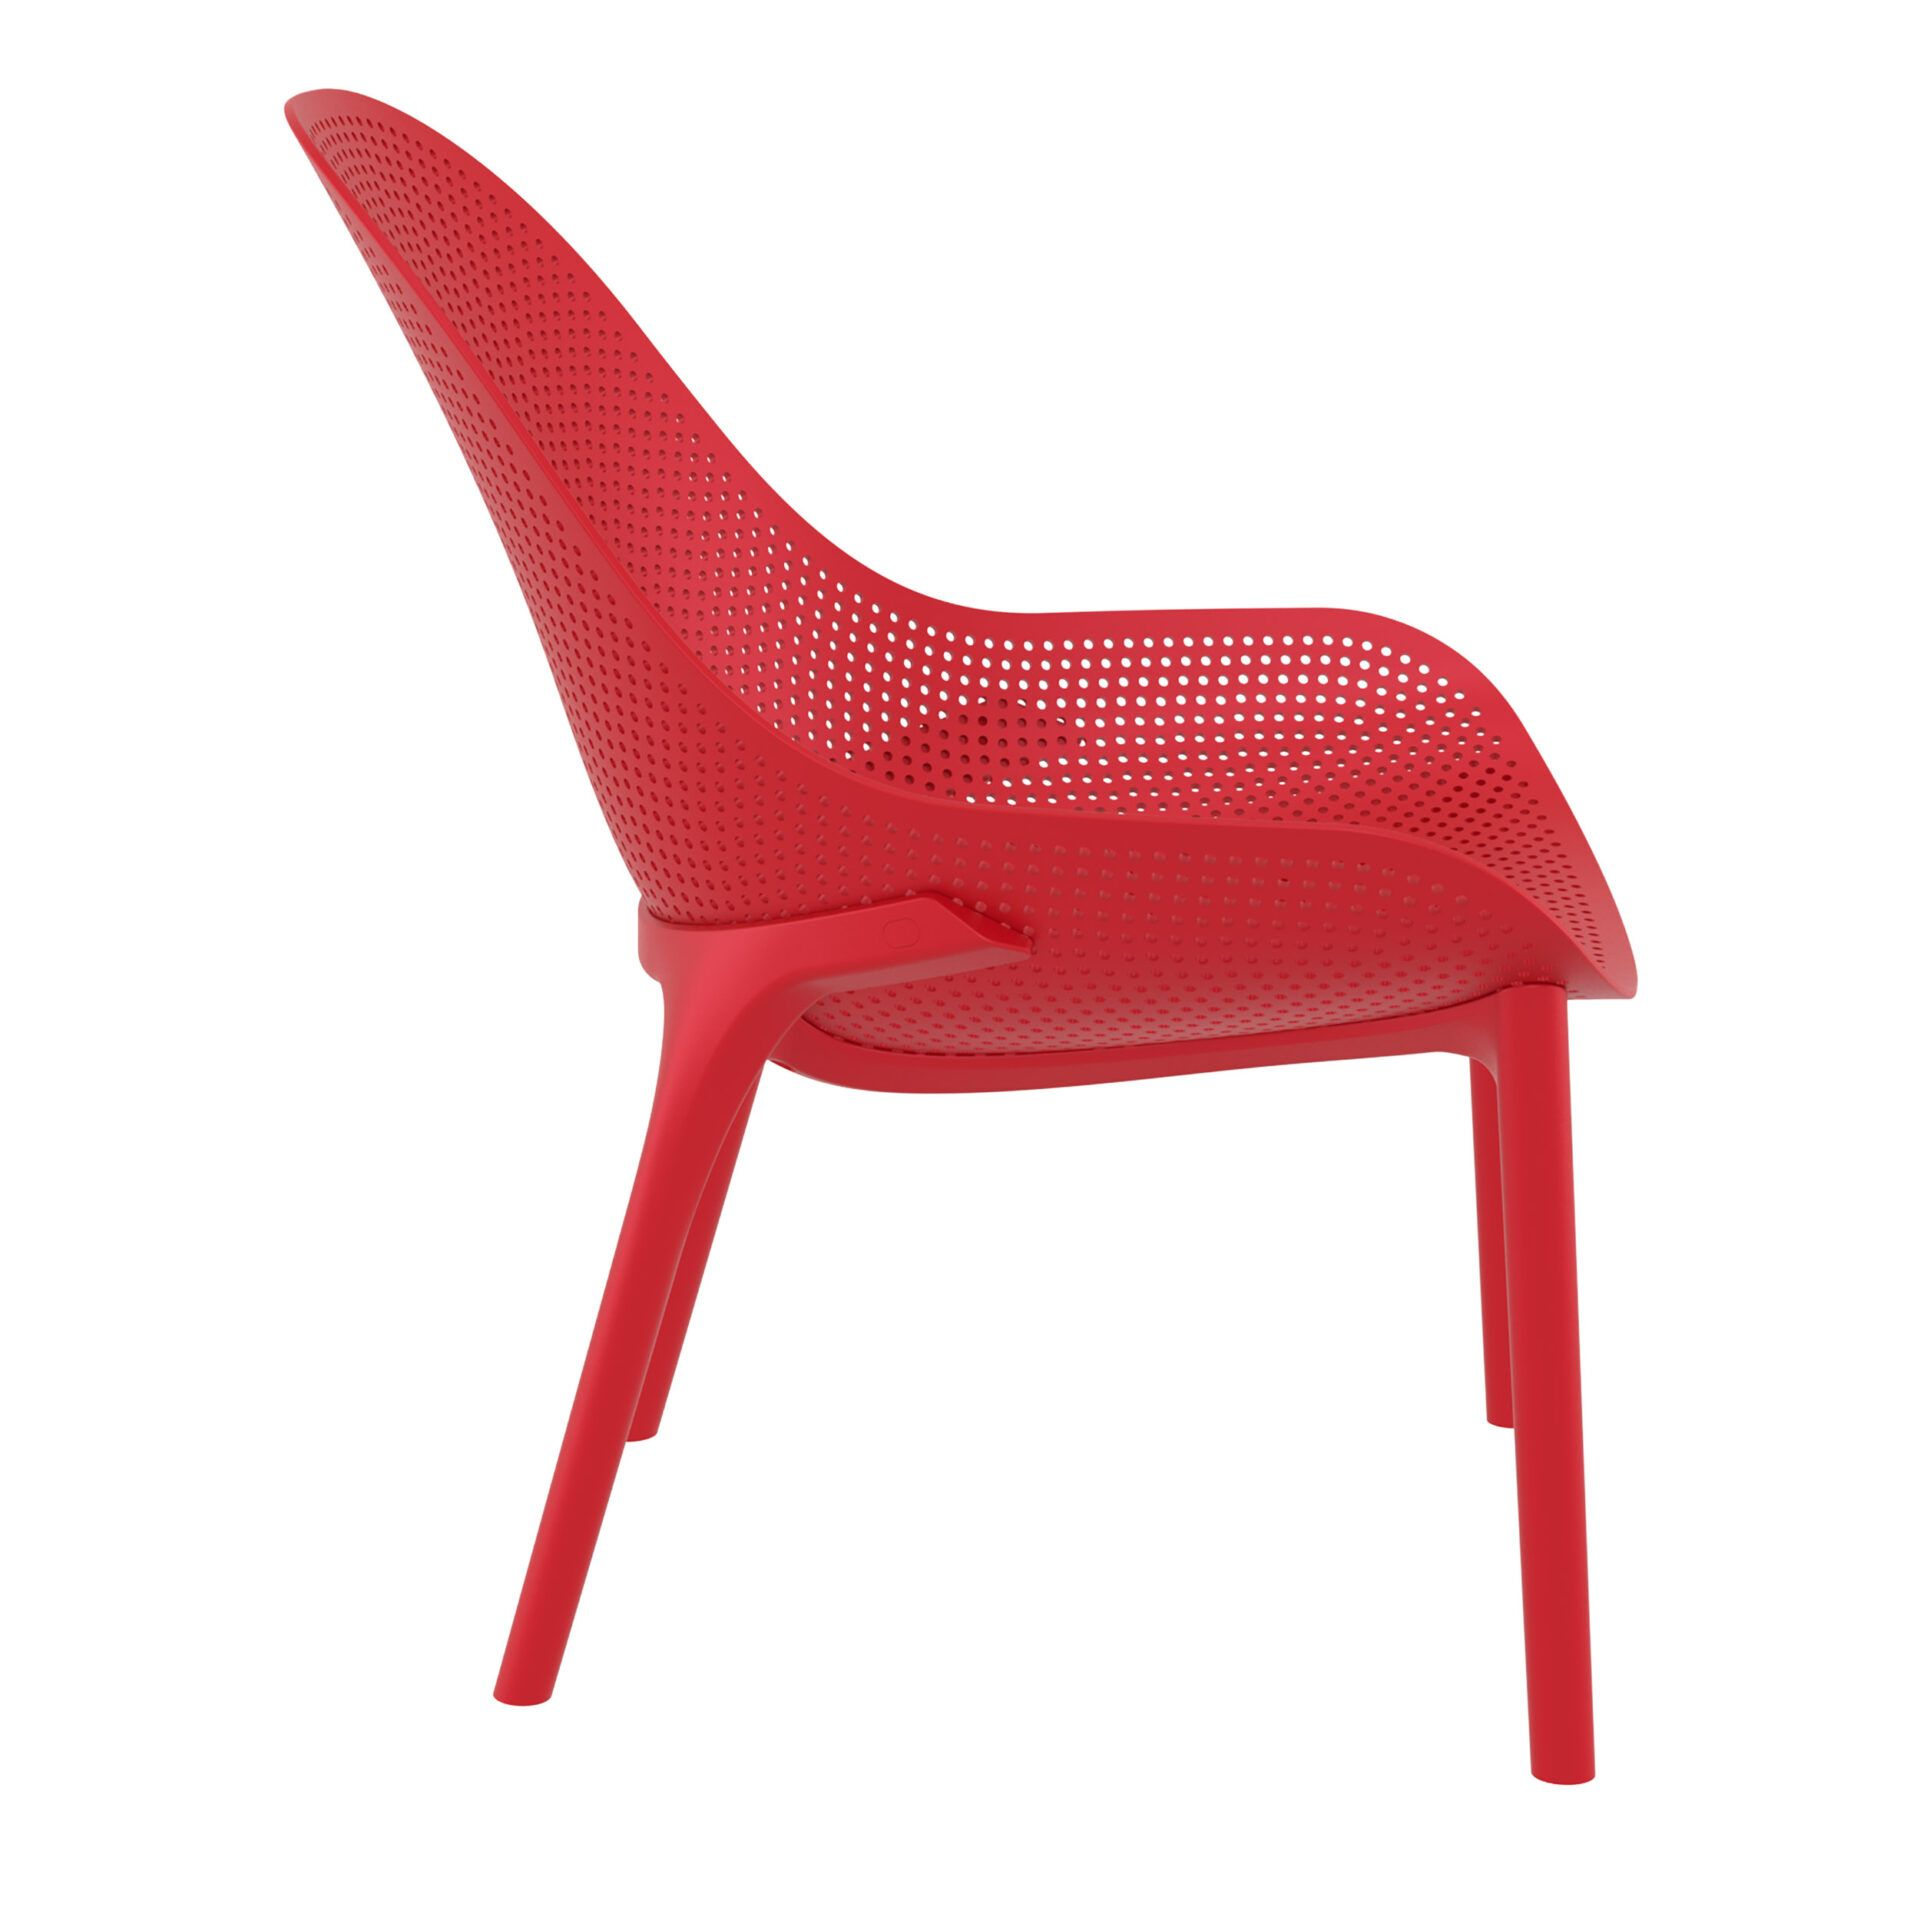 outdoor seating polypropylene sky lounge red side